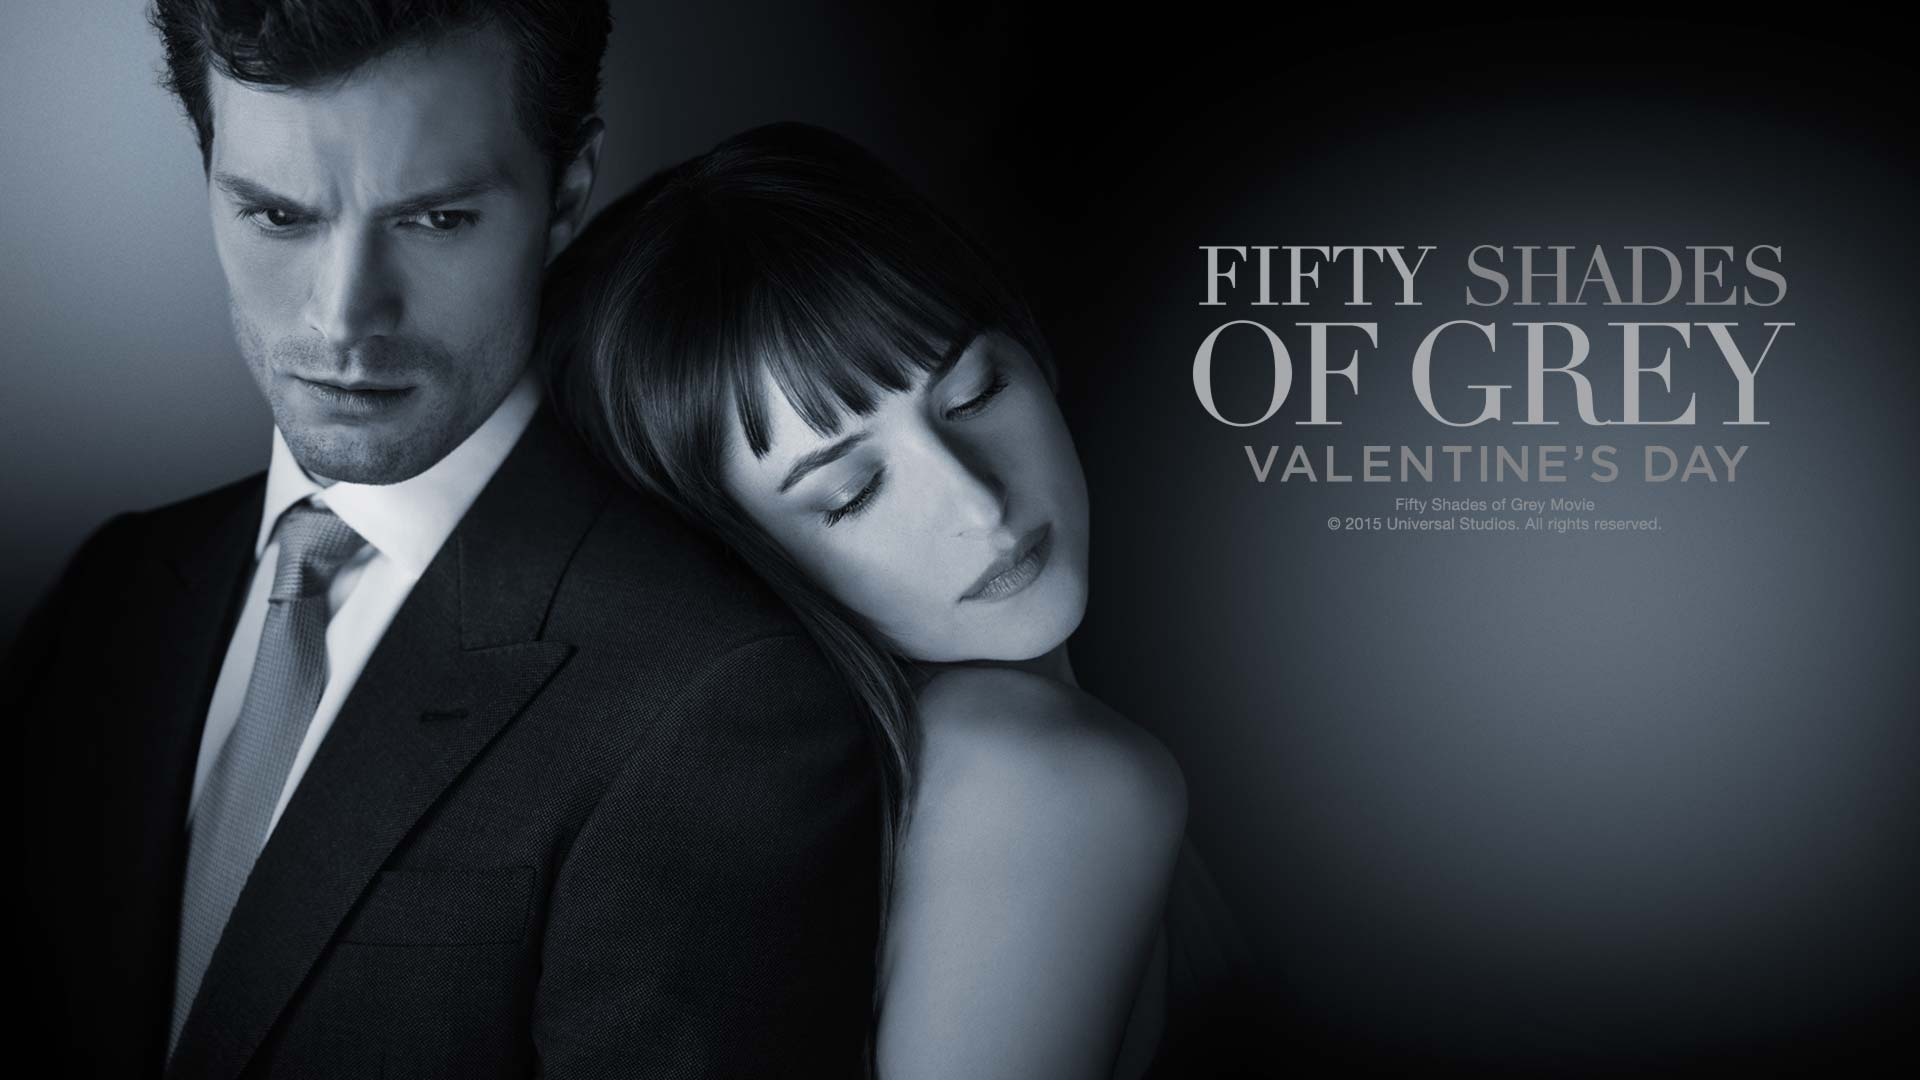 Fifty Shades of Vanity: The Fabrication of Love